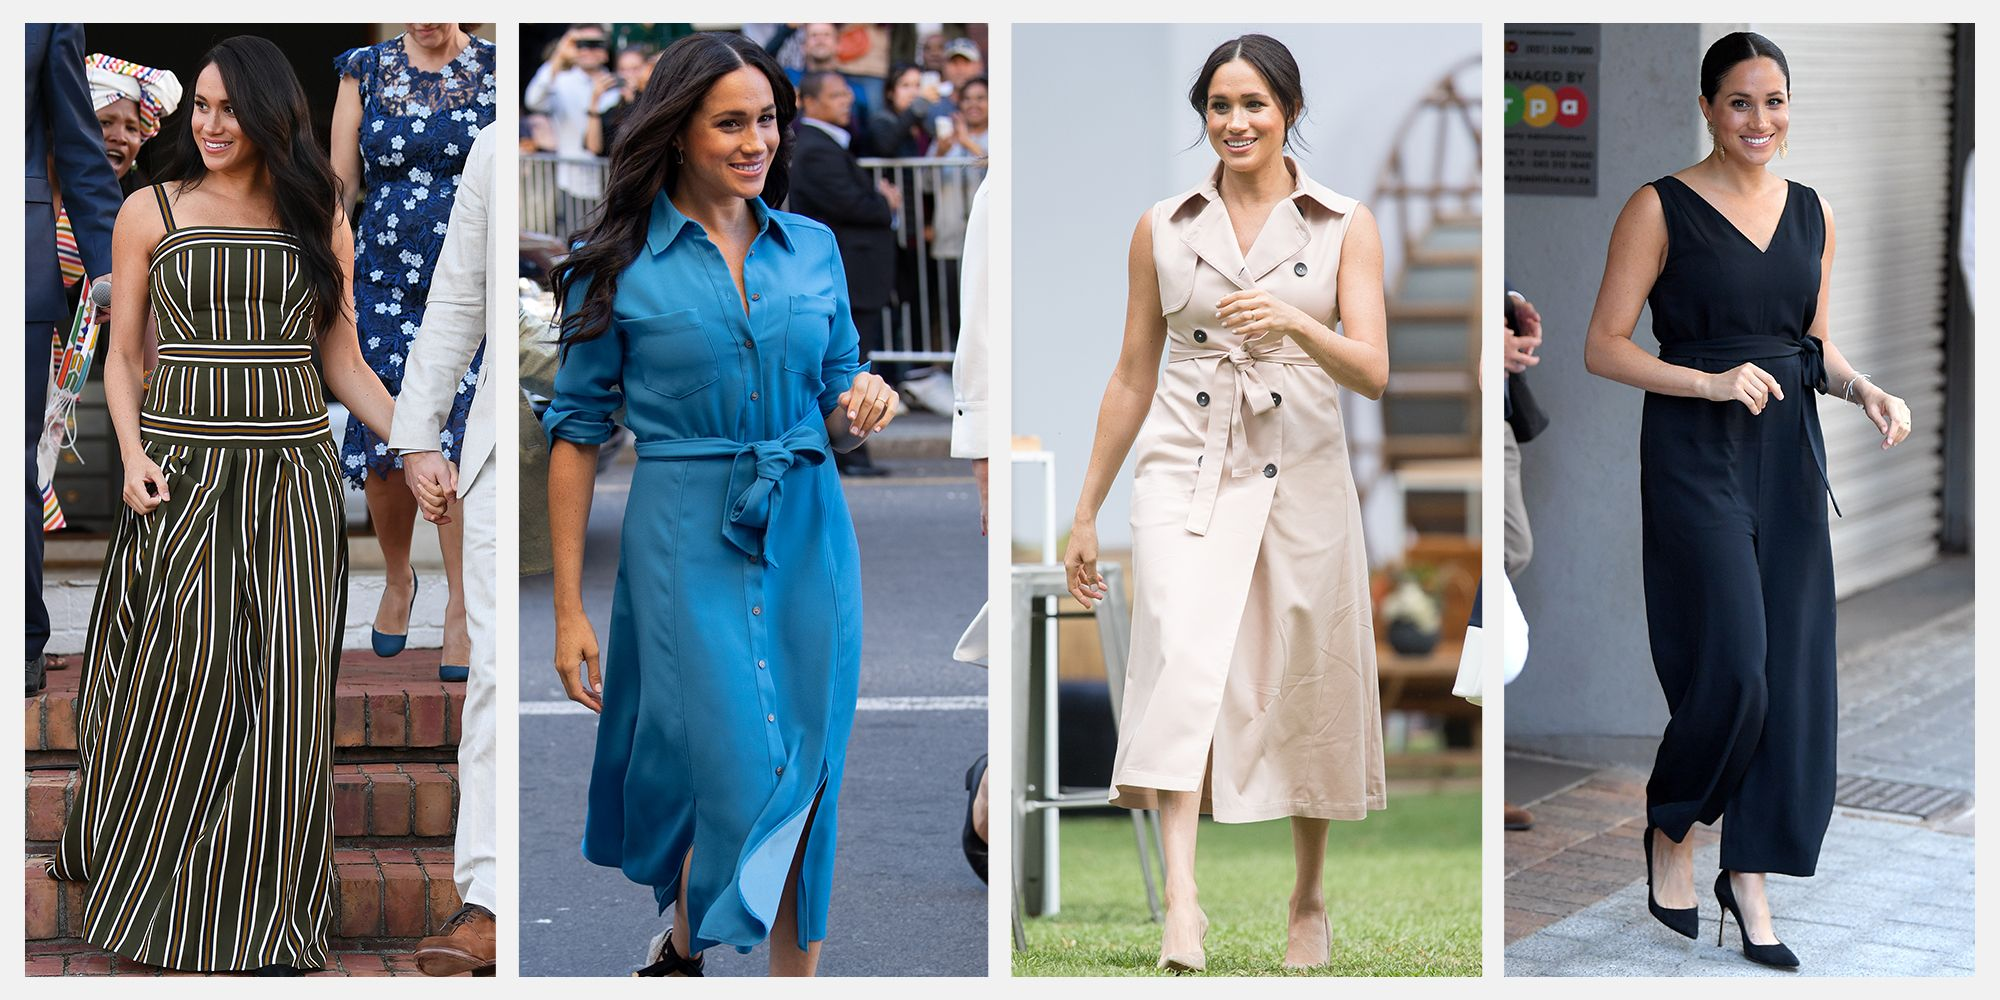 Meghan Markle and the Power of the Re-Wear: How Her Royal Tour Wardrobe Kept the Focus on Substance